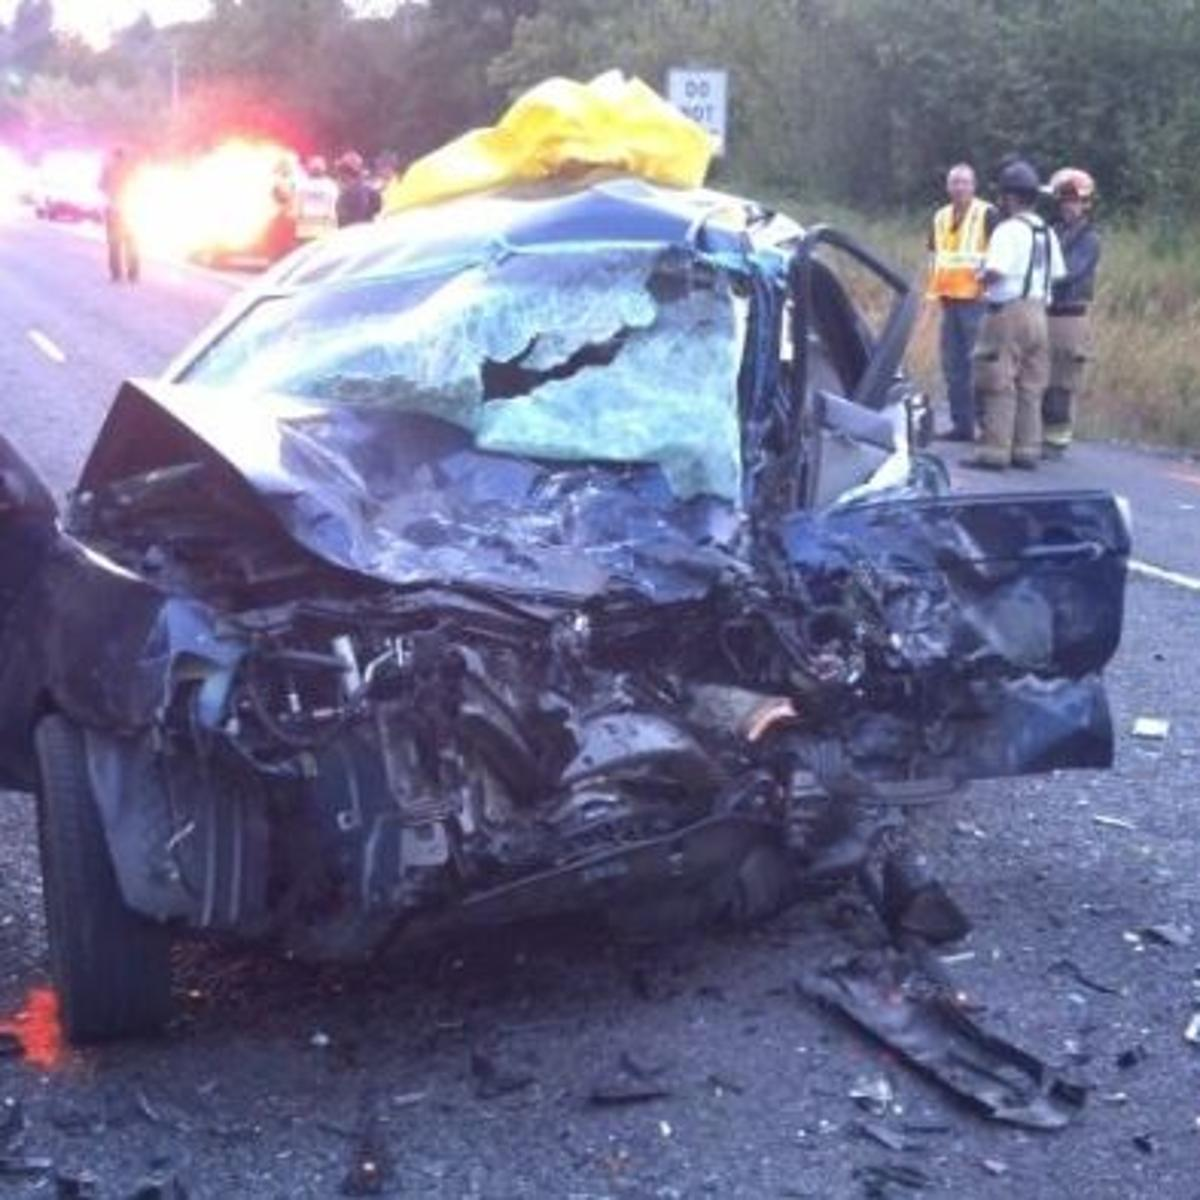 Two killed, two injured in wreck Tuesday near Stayton | Local